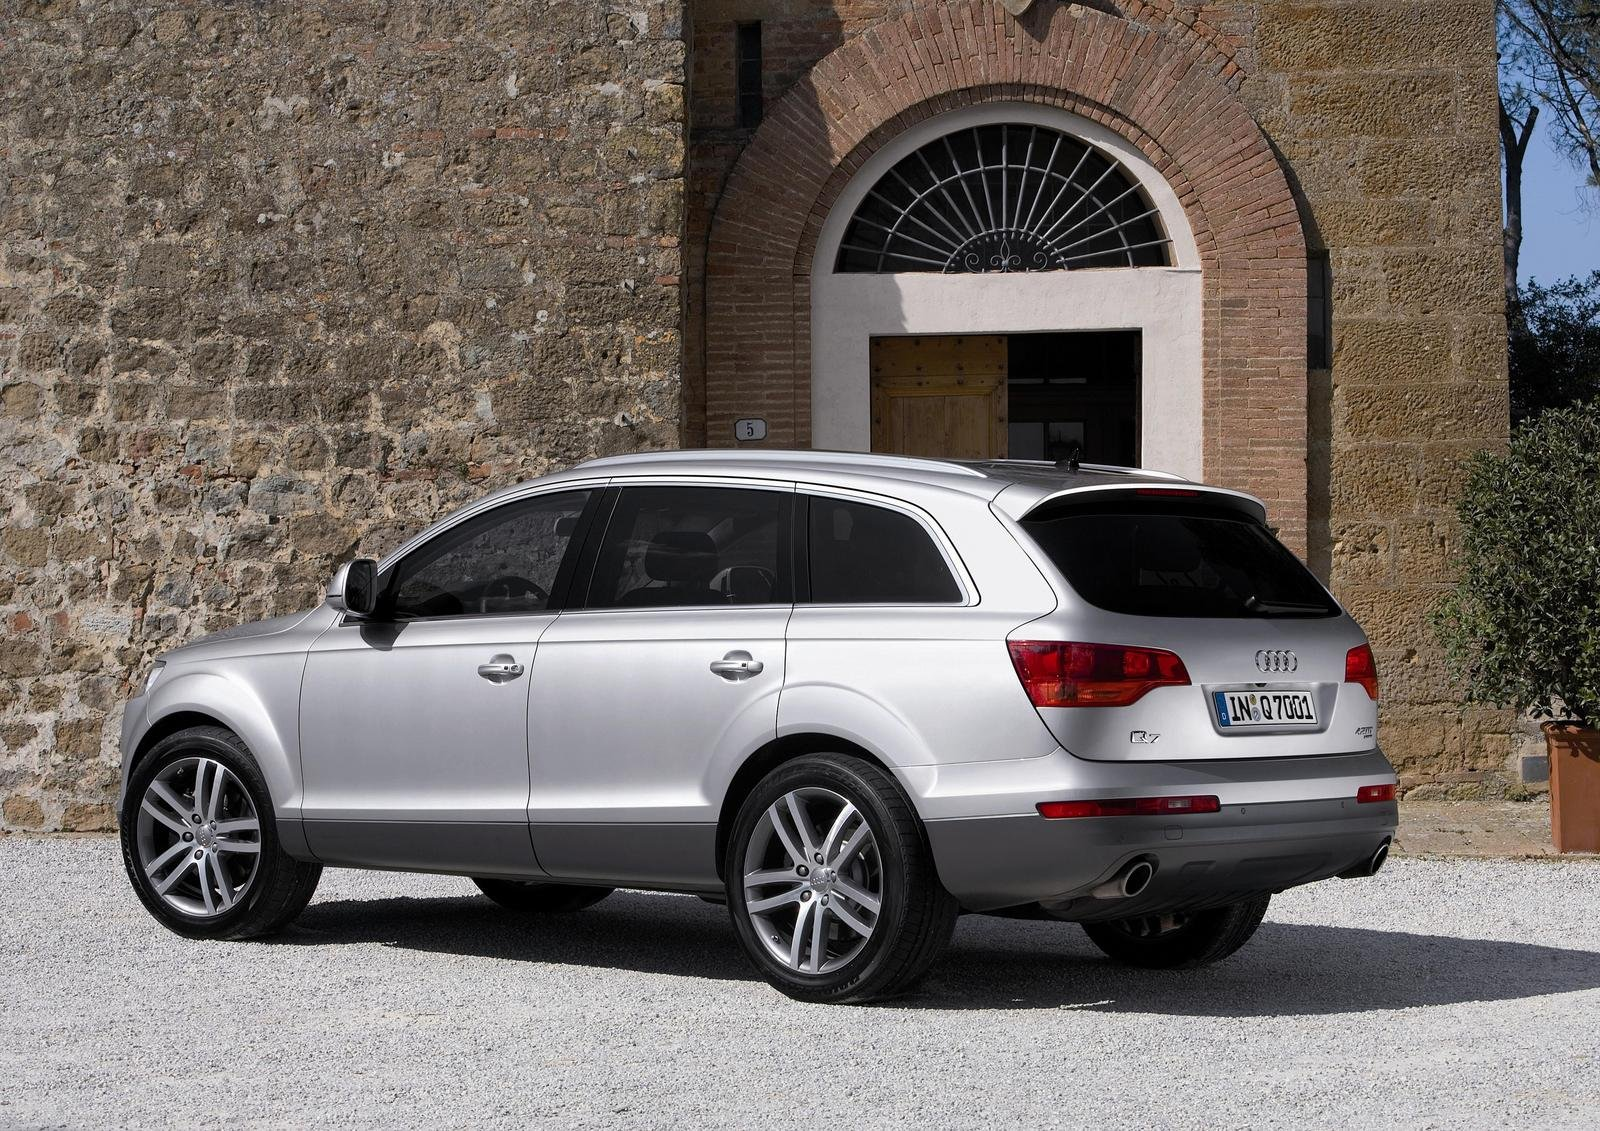 2007 audi q7 4 2 tdi picture 166677 car review top speed. Black Bedroom Furniture Sets. Home Design Ideas